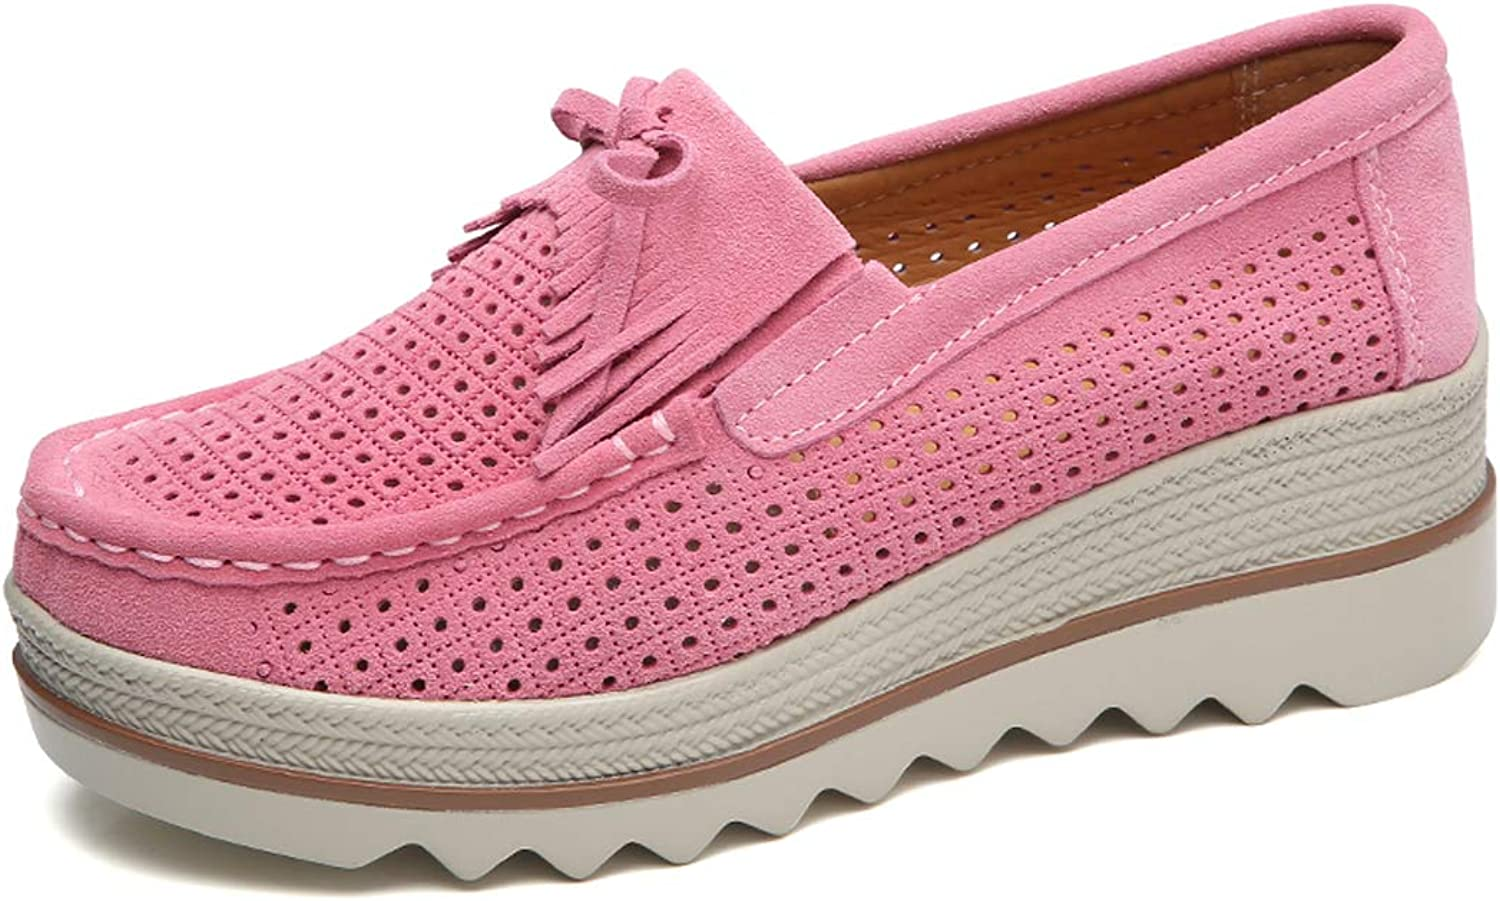 Ruiatoo Women Platform Slip On Loafers Comfort Genuine Suede with Tassel Hollow Out Low Top Moccasins Pink 40